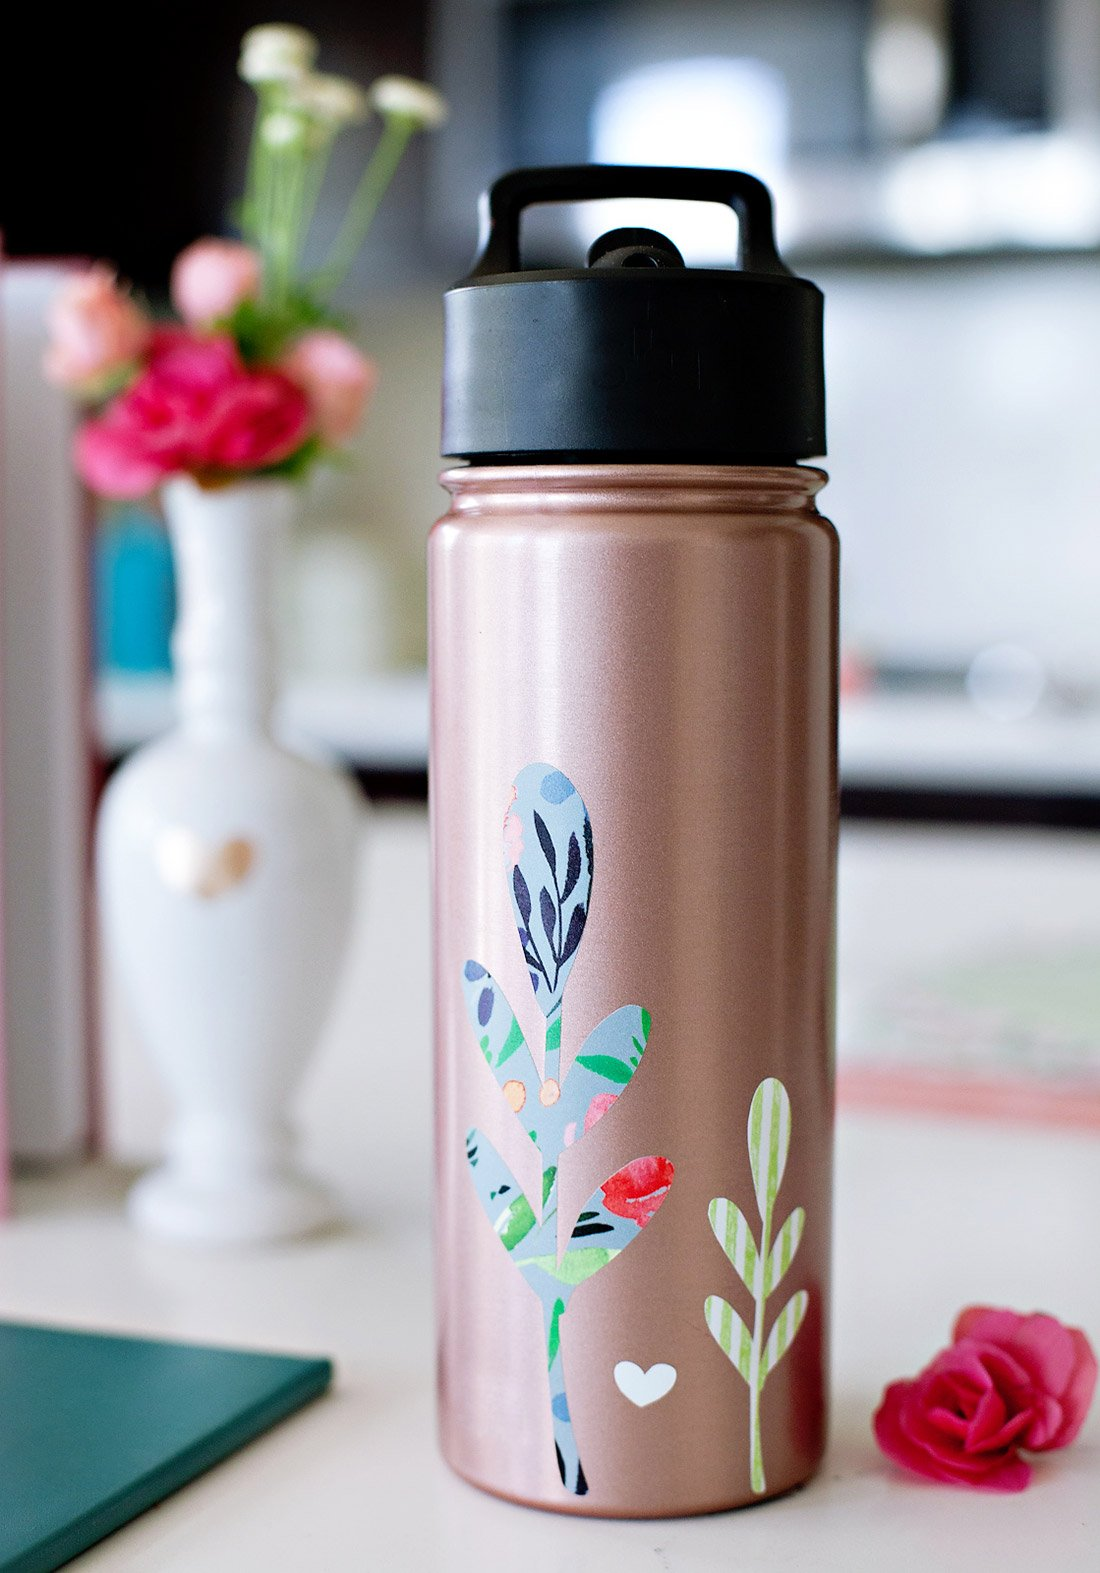 Personalize Water Bottle with Cricut